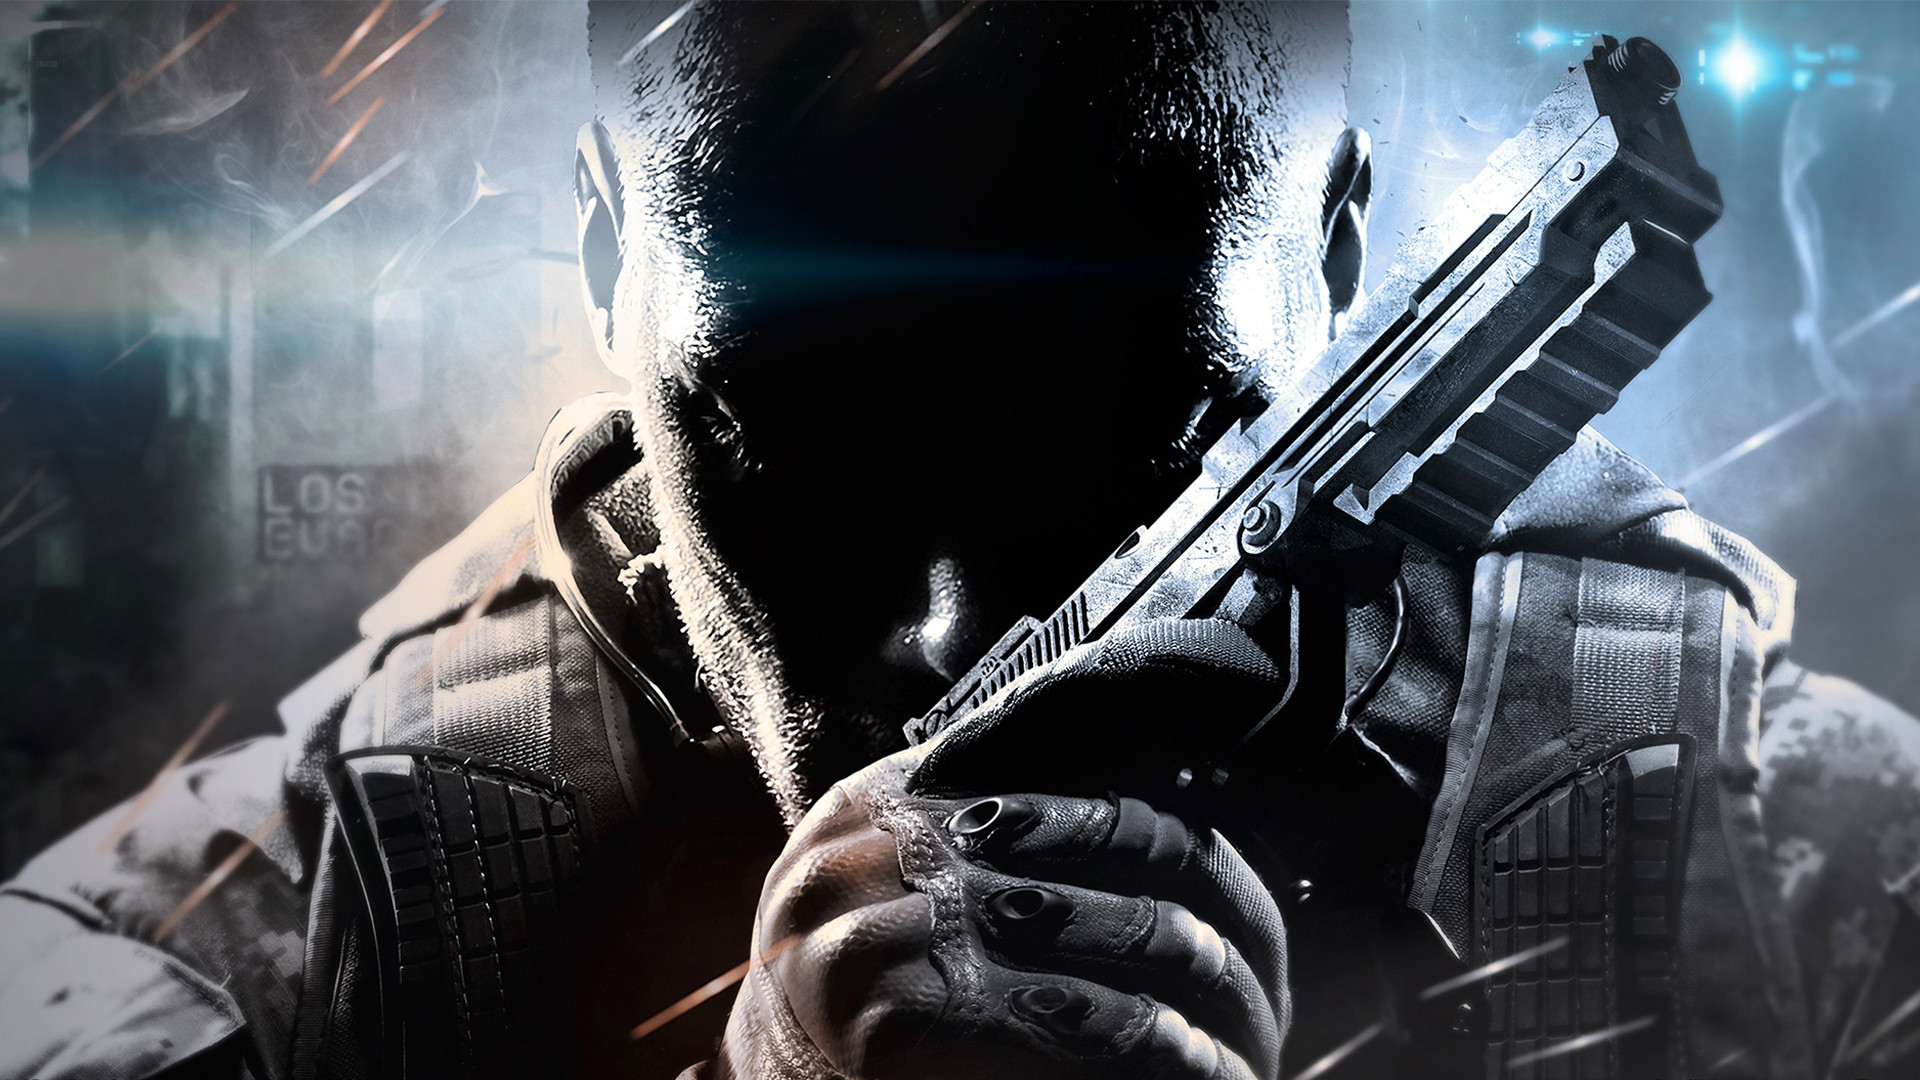 ps3 hd wallpapers 1080p (75+ images)